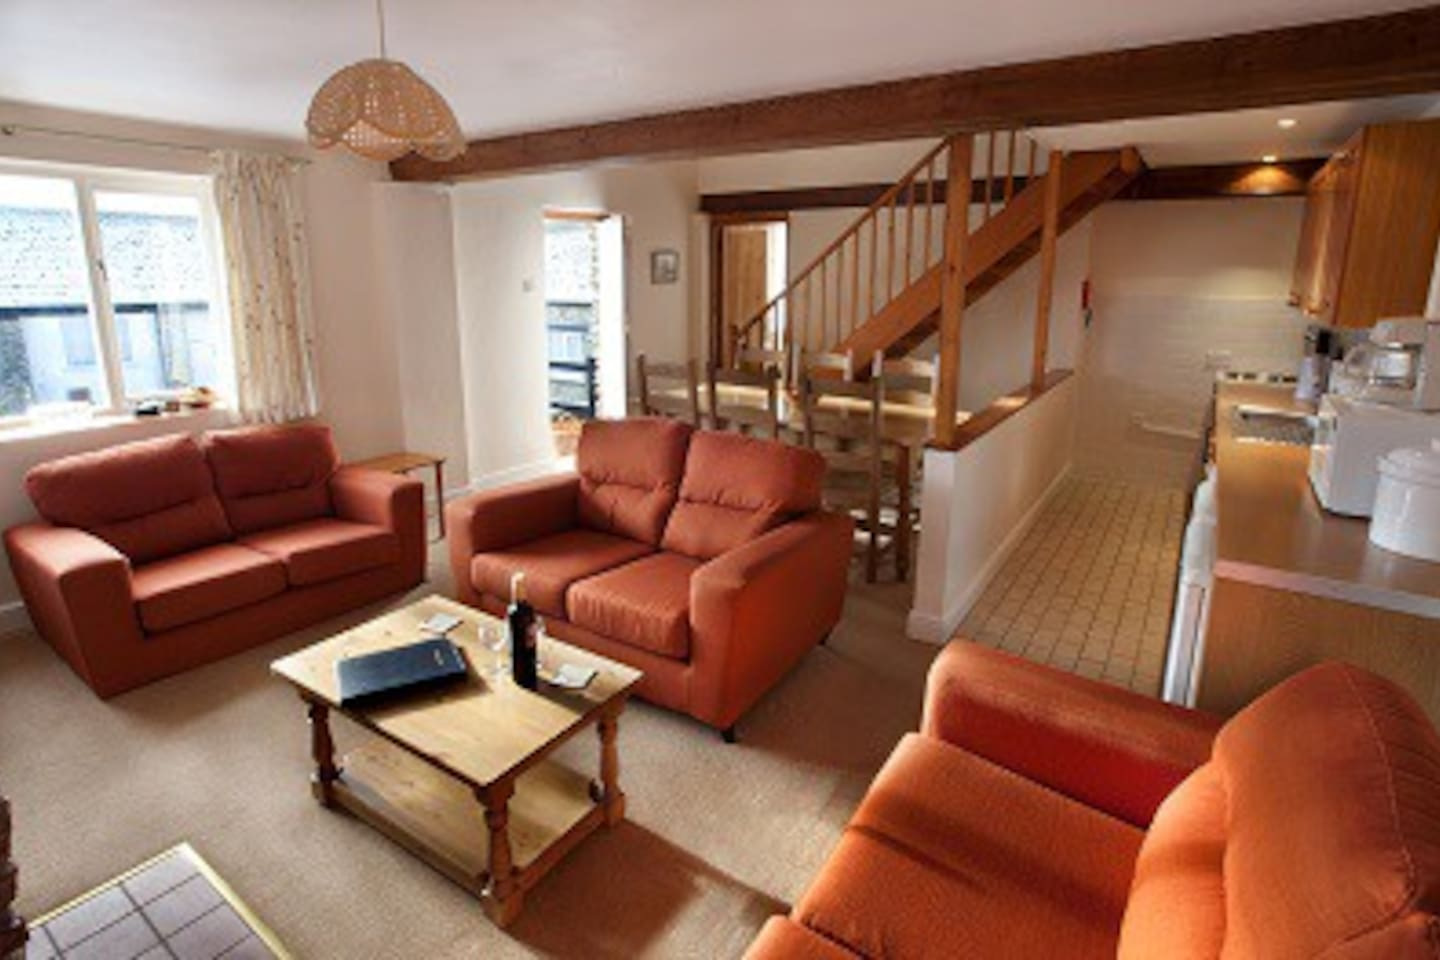 Large sitting area for larger family